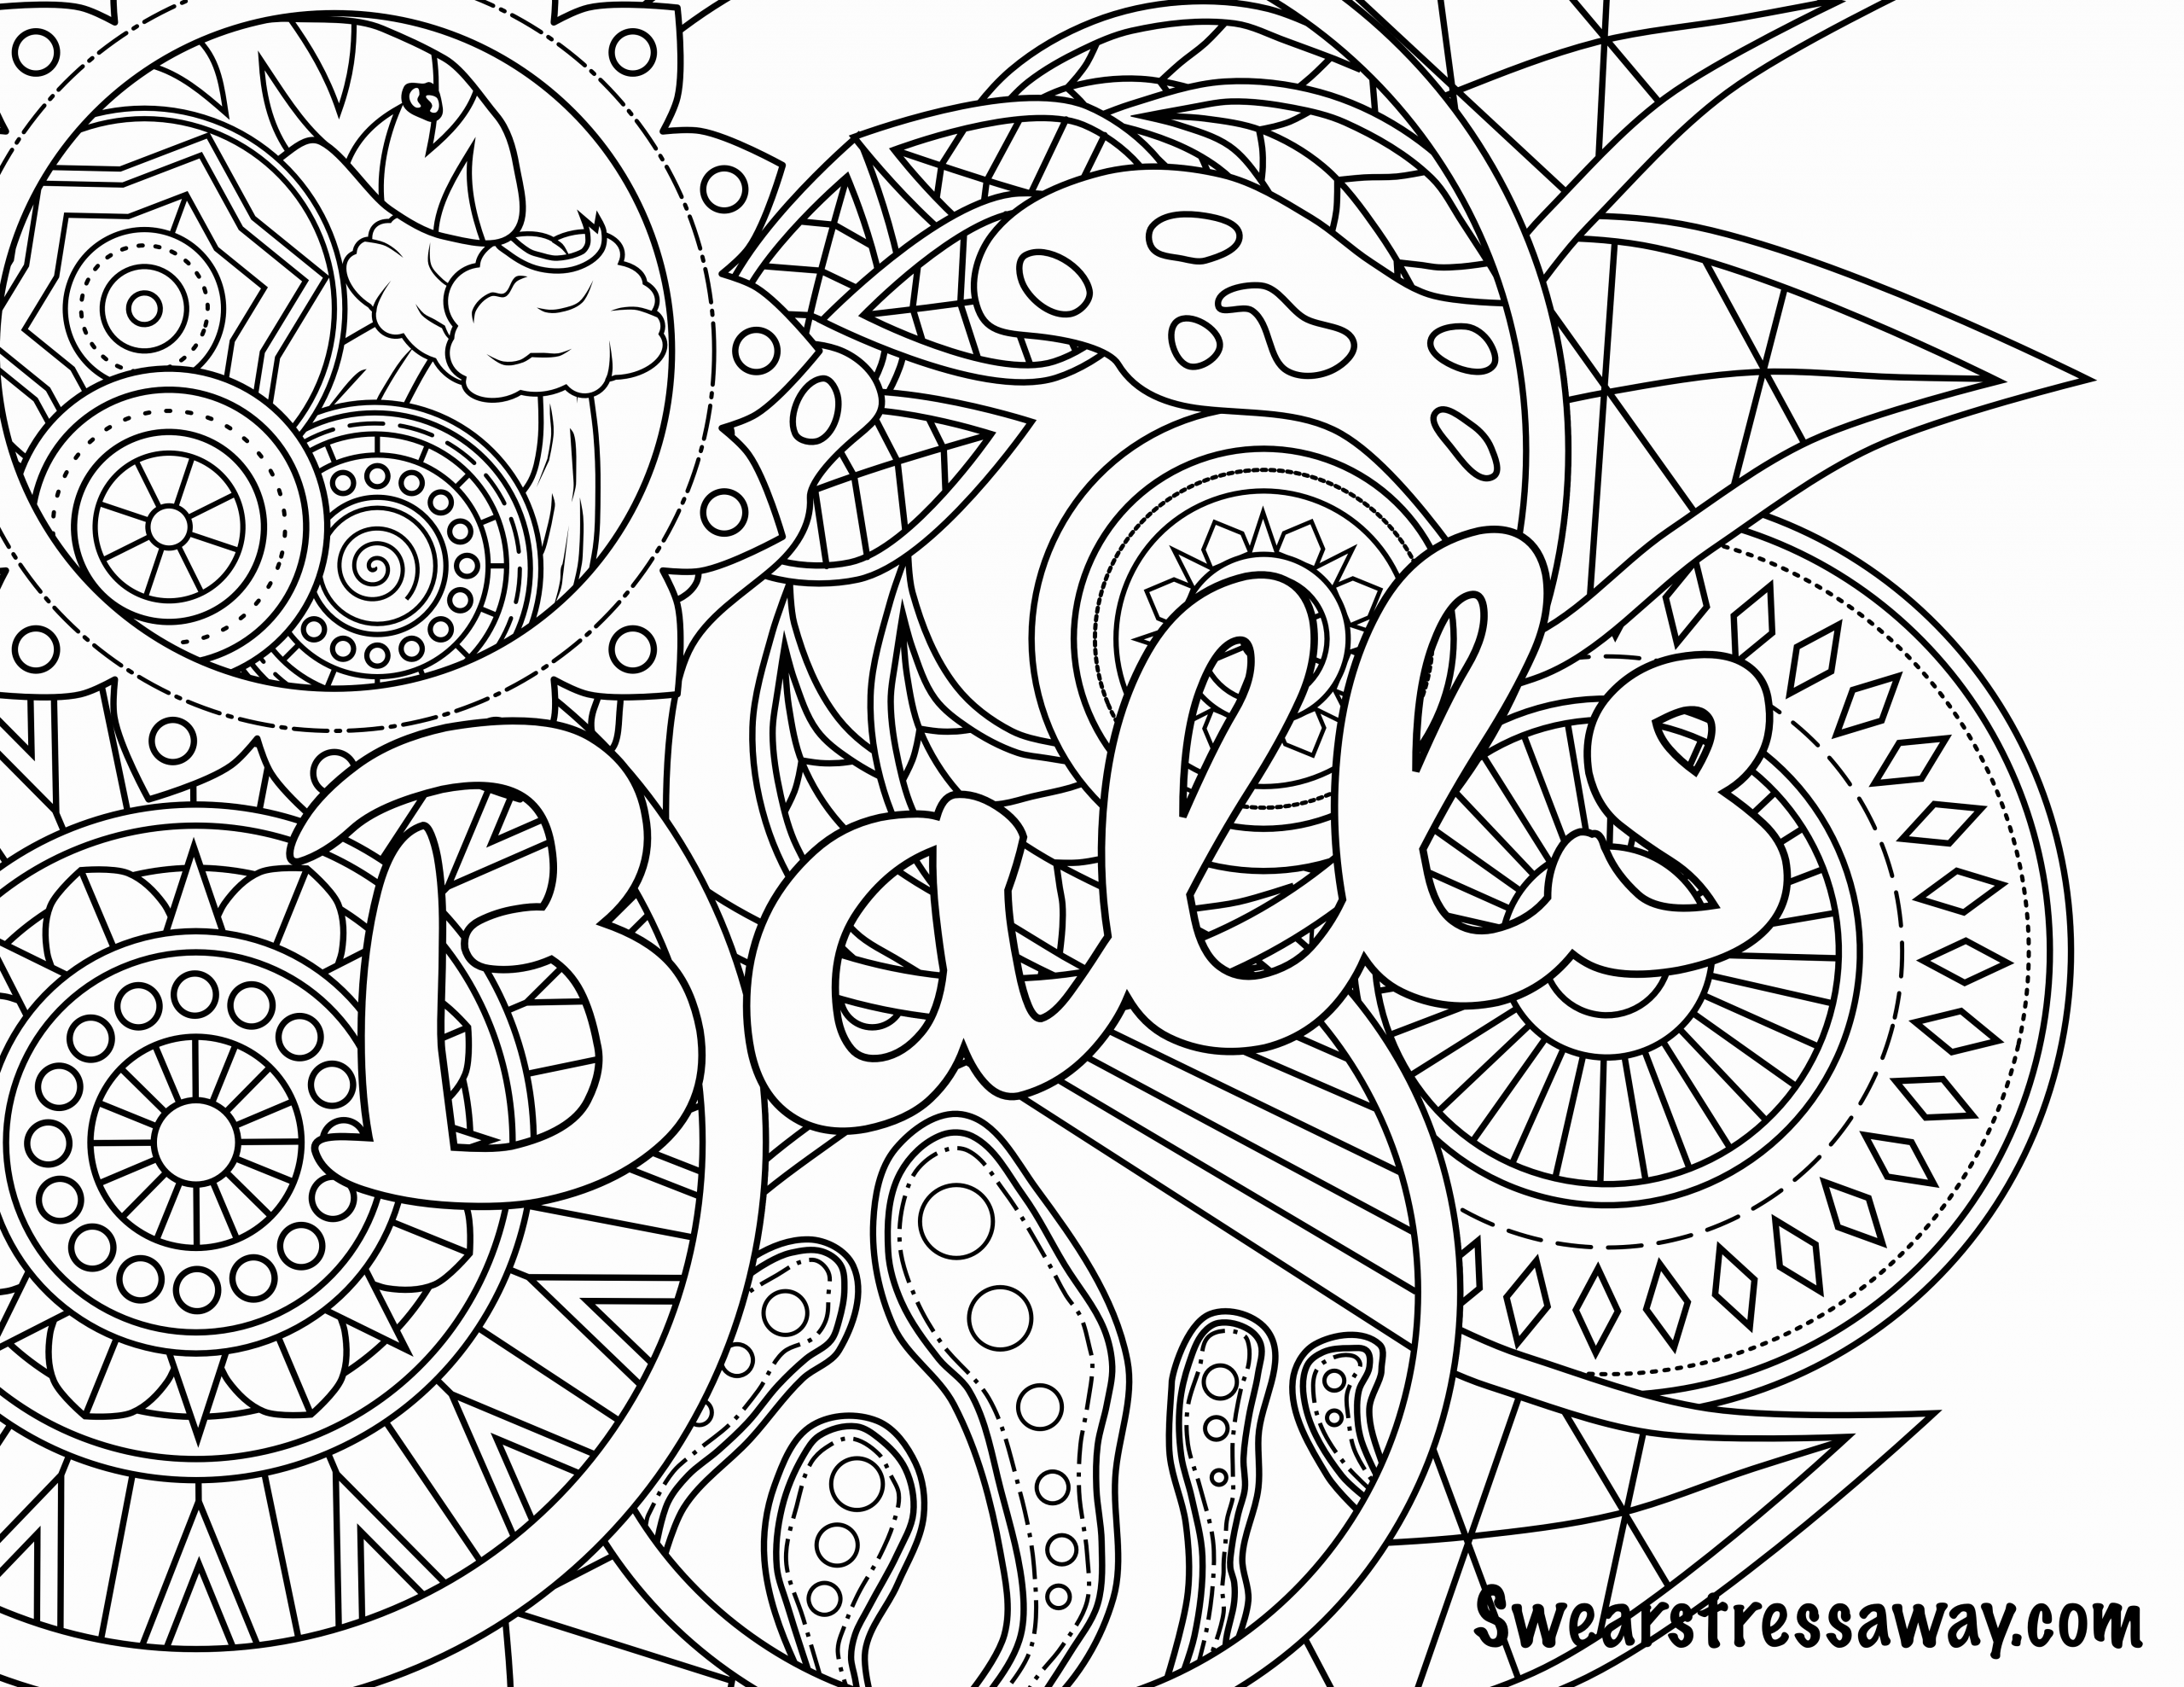 coloring pages for adults cuss words swear word coloring pages printable at getcoloringscom words coloring pages adults cuss for